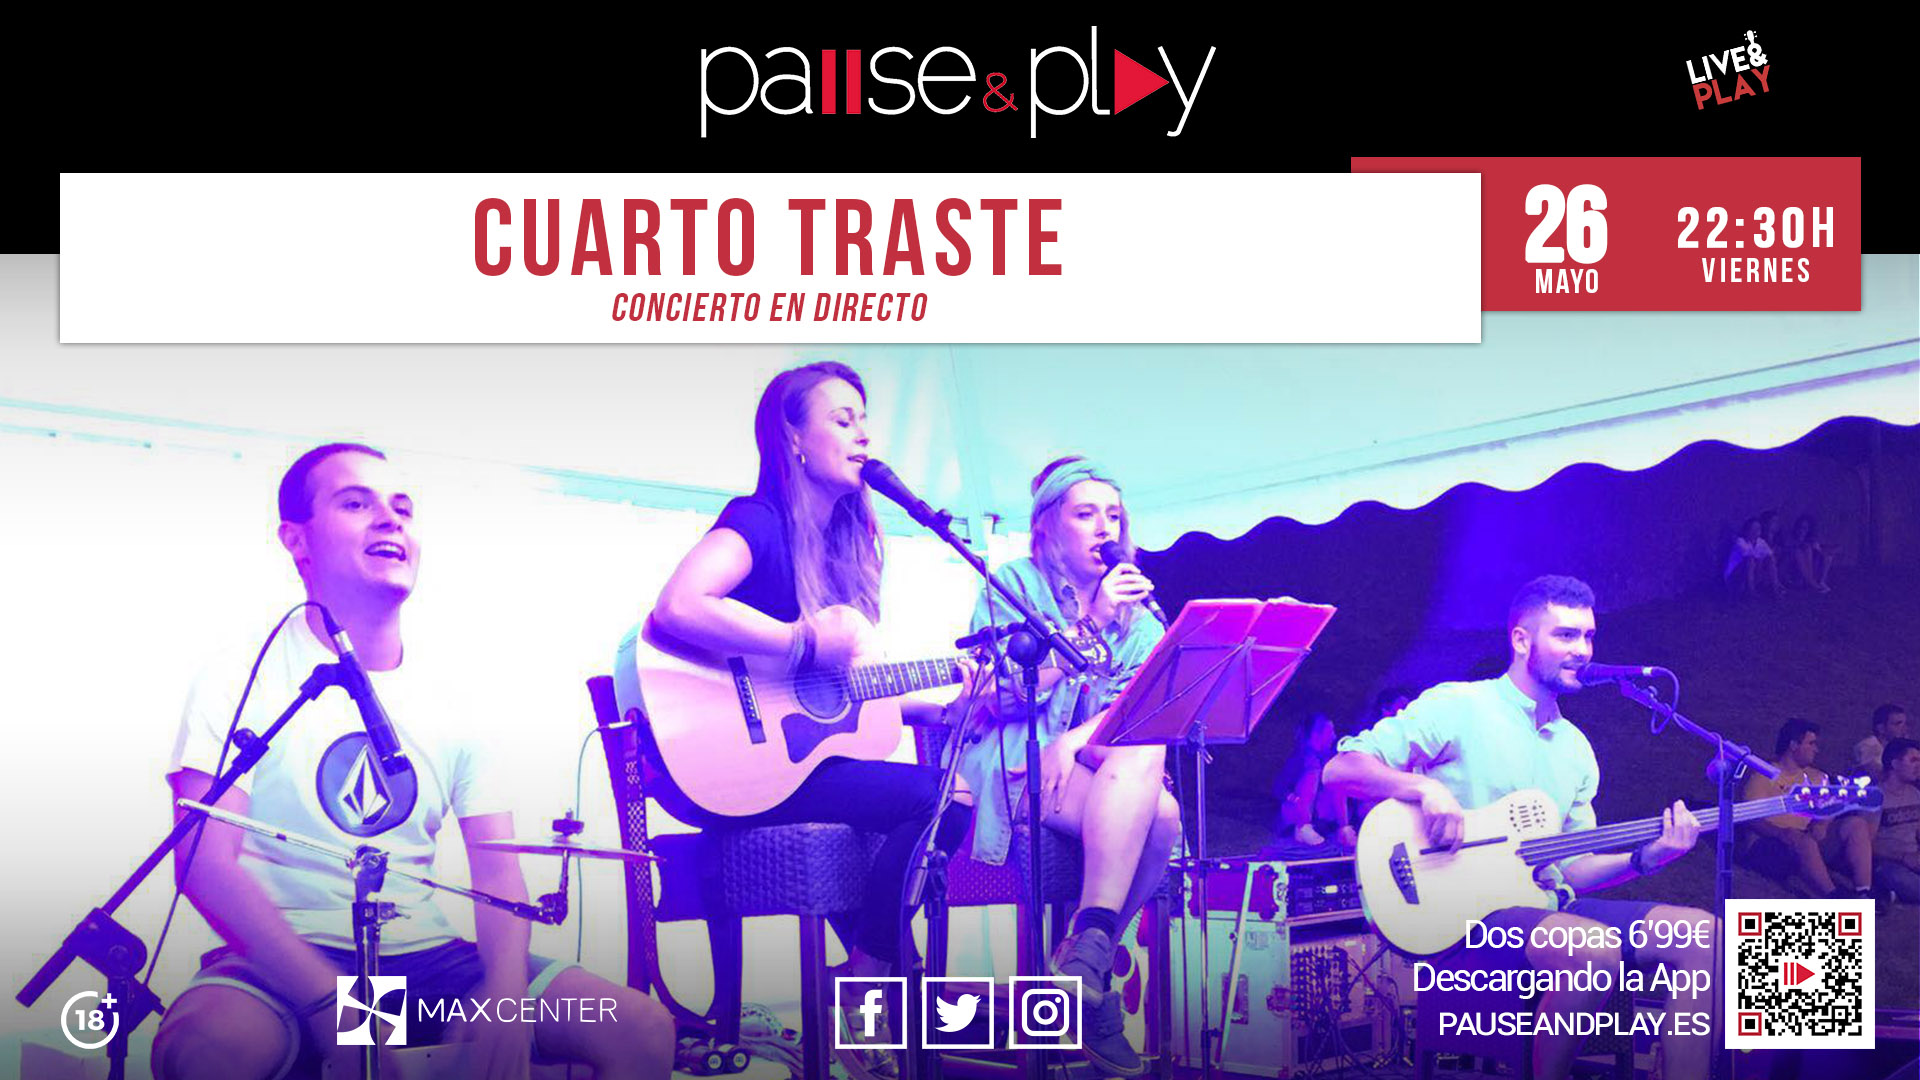 PAUSE&PLAY MAX CENTER